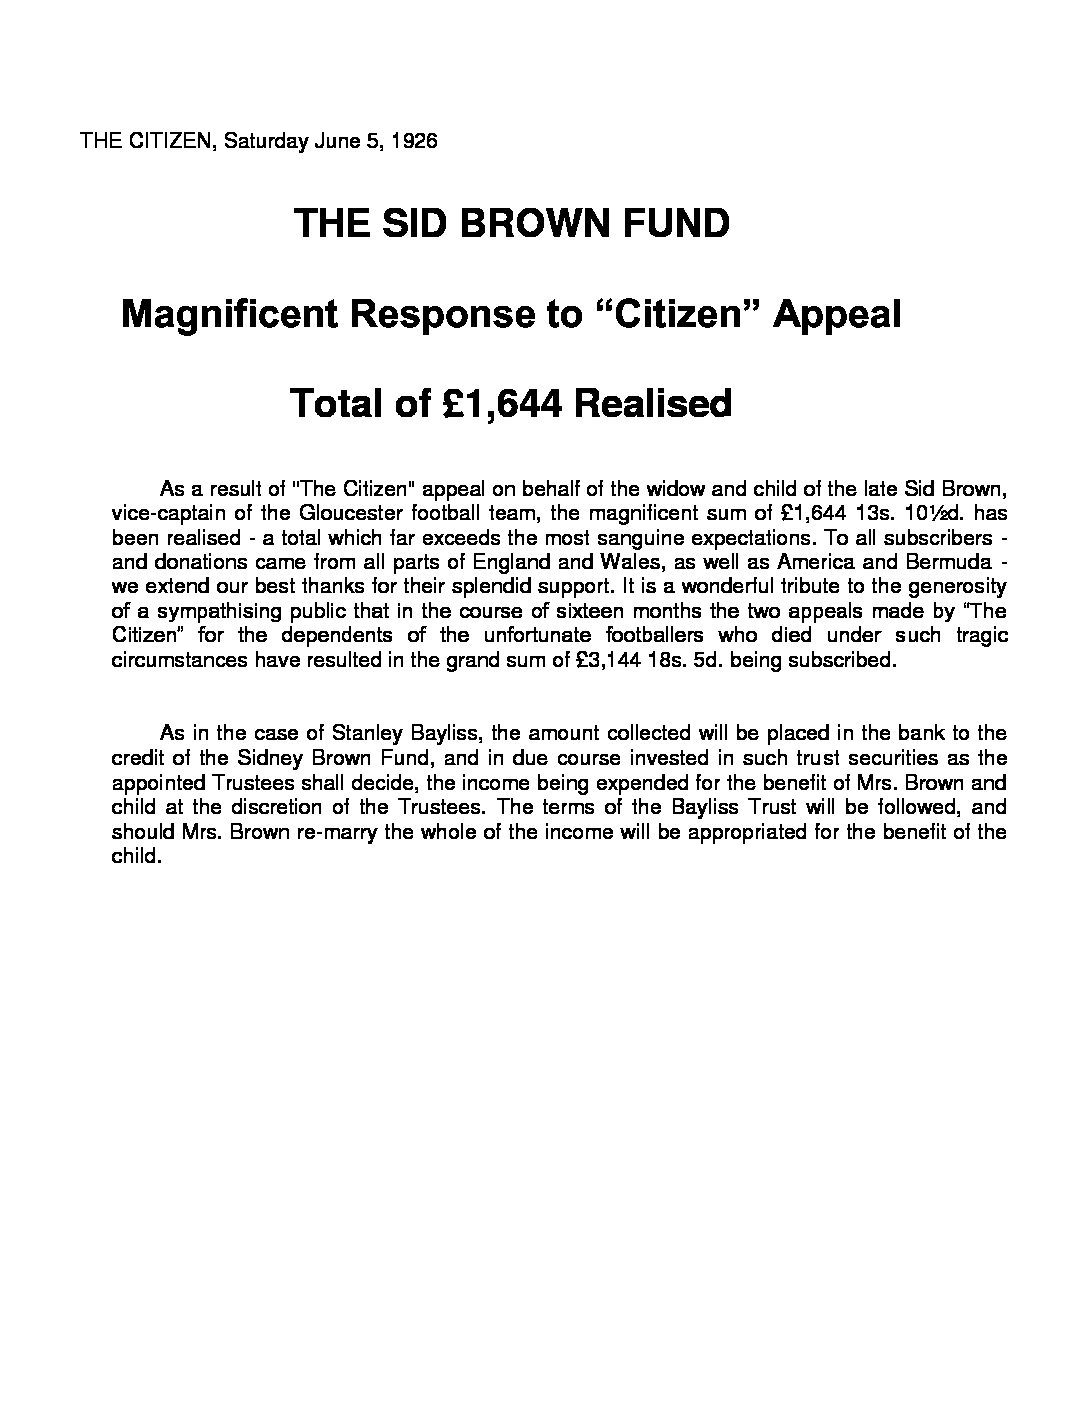 The Sid Brown Fund